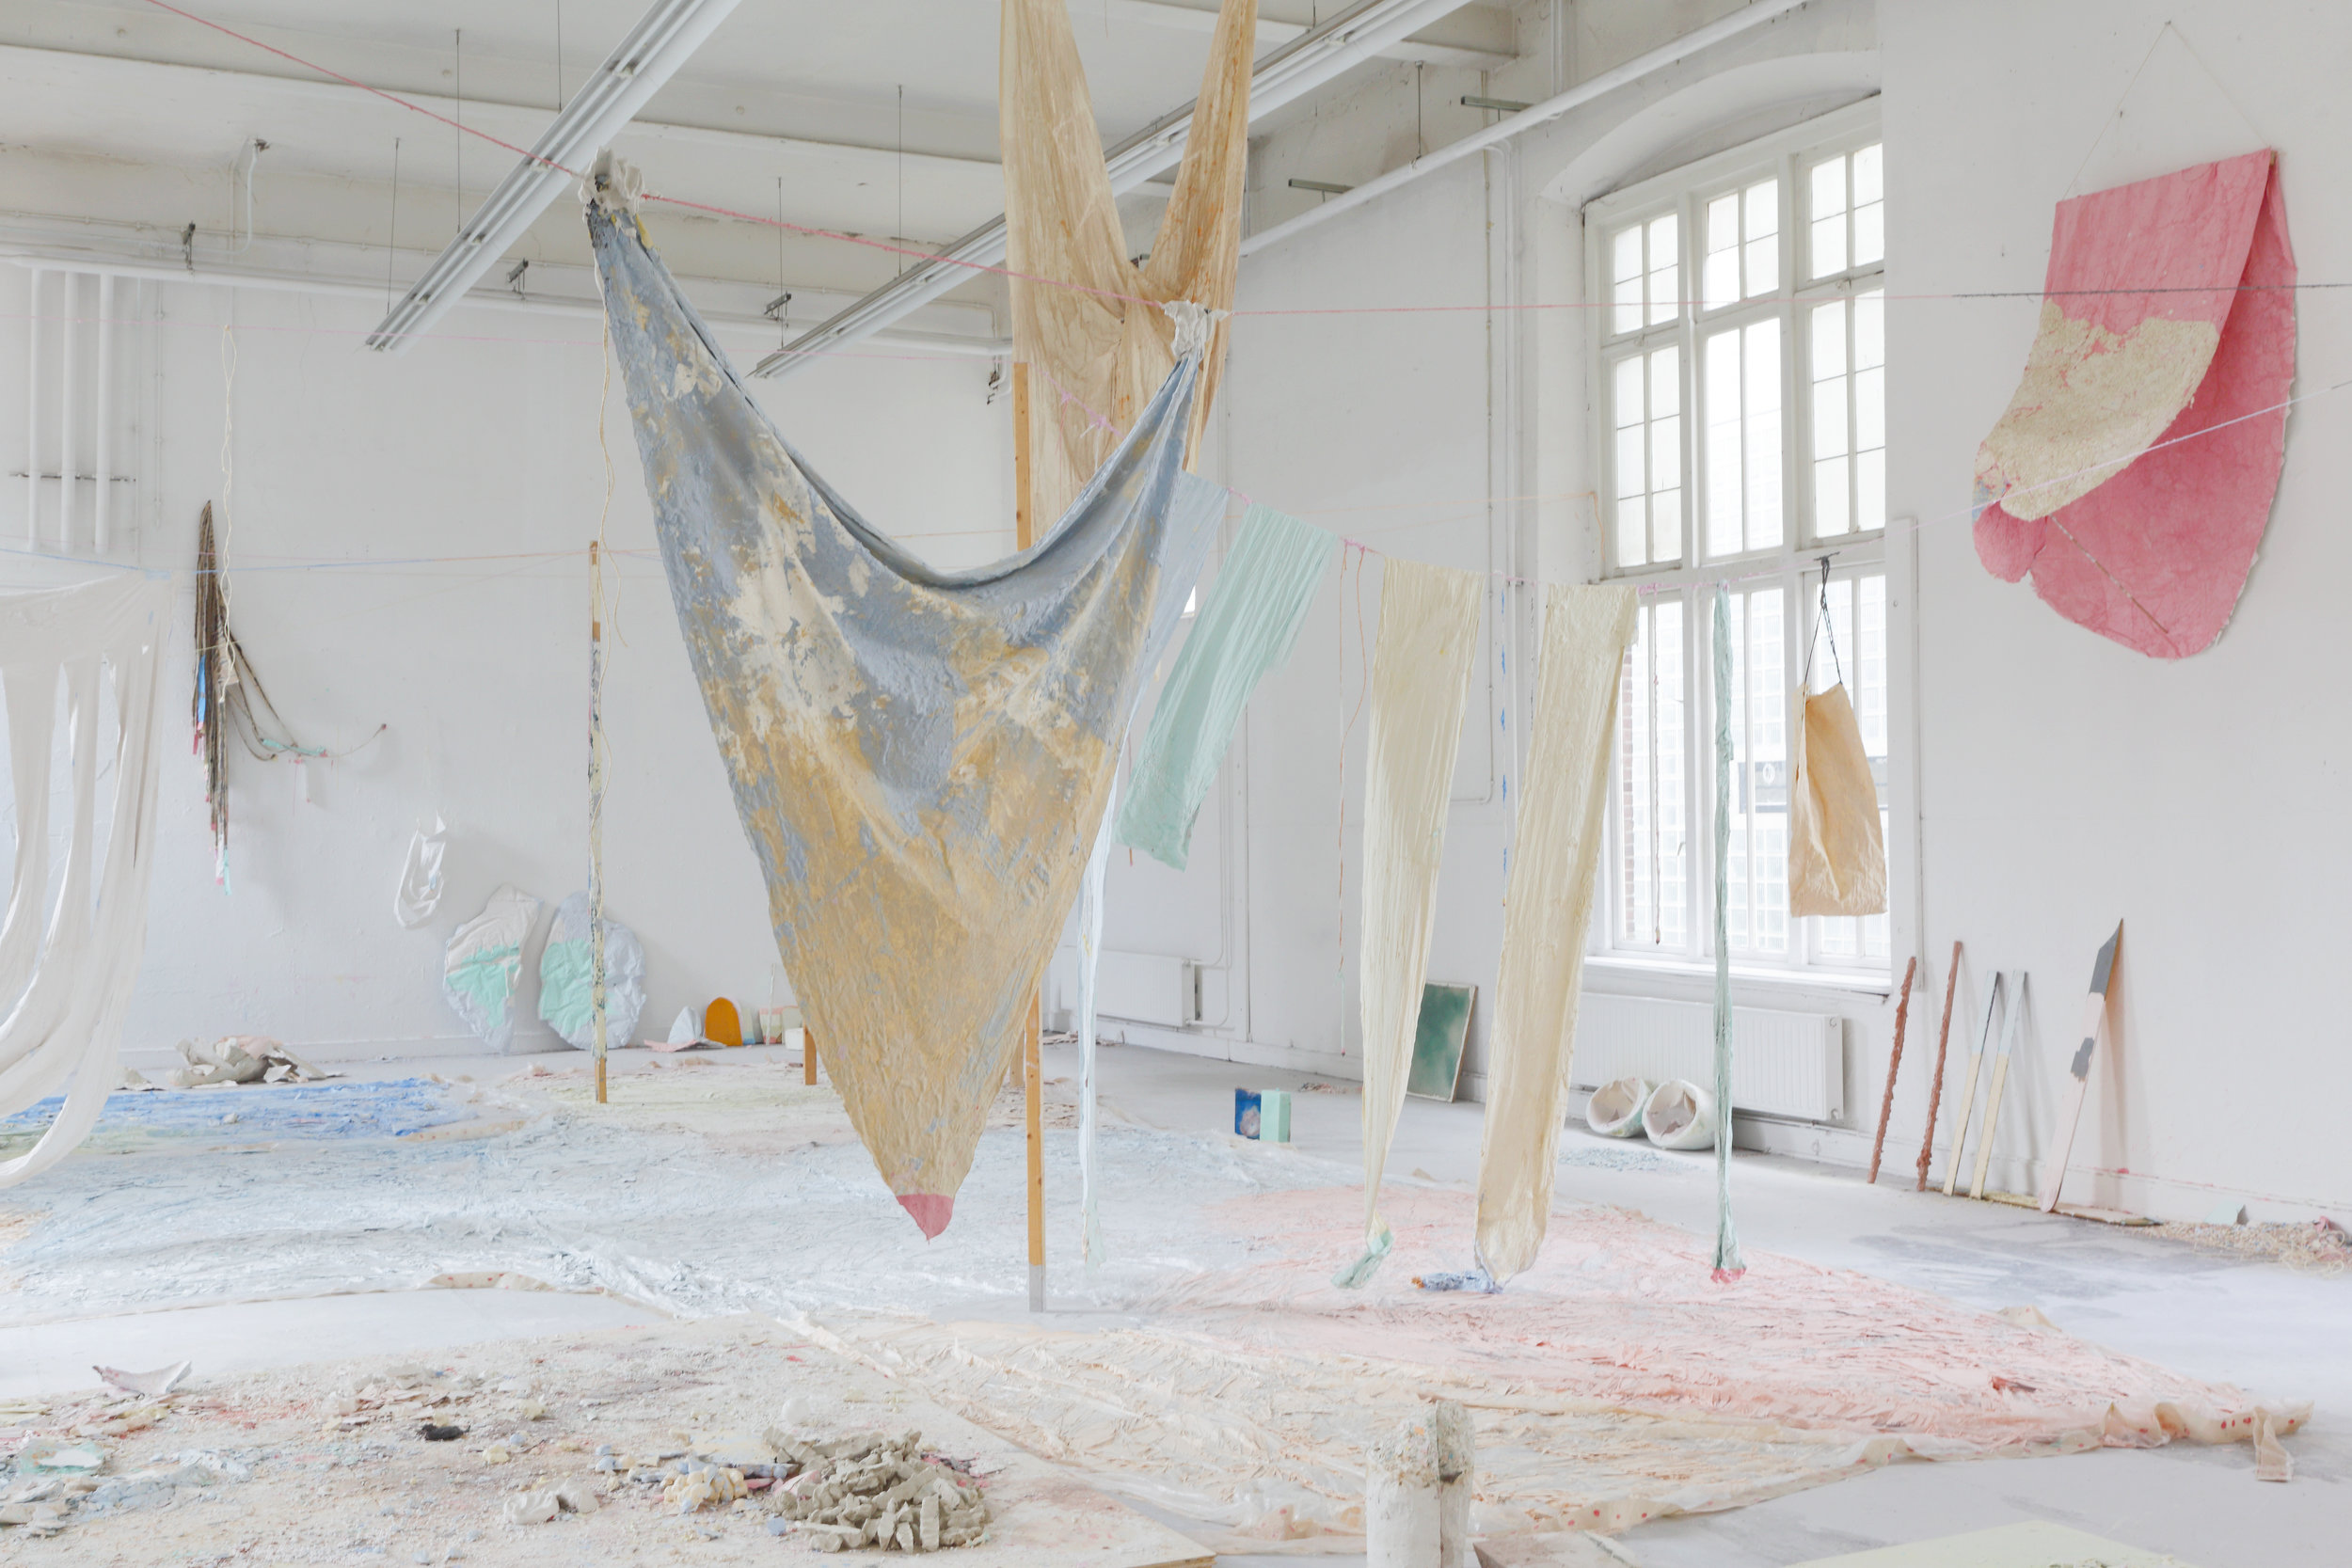 Some things that still need to be said (also about how candy is made) - Colored chalk, textiles, wax, plastics, various paints, wood, 2400 x 1100 cm, graduation show MAFAD Maastricht, 2014